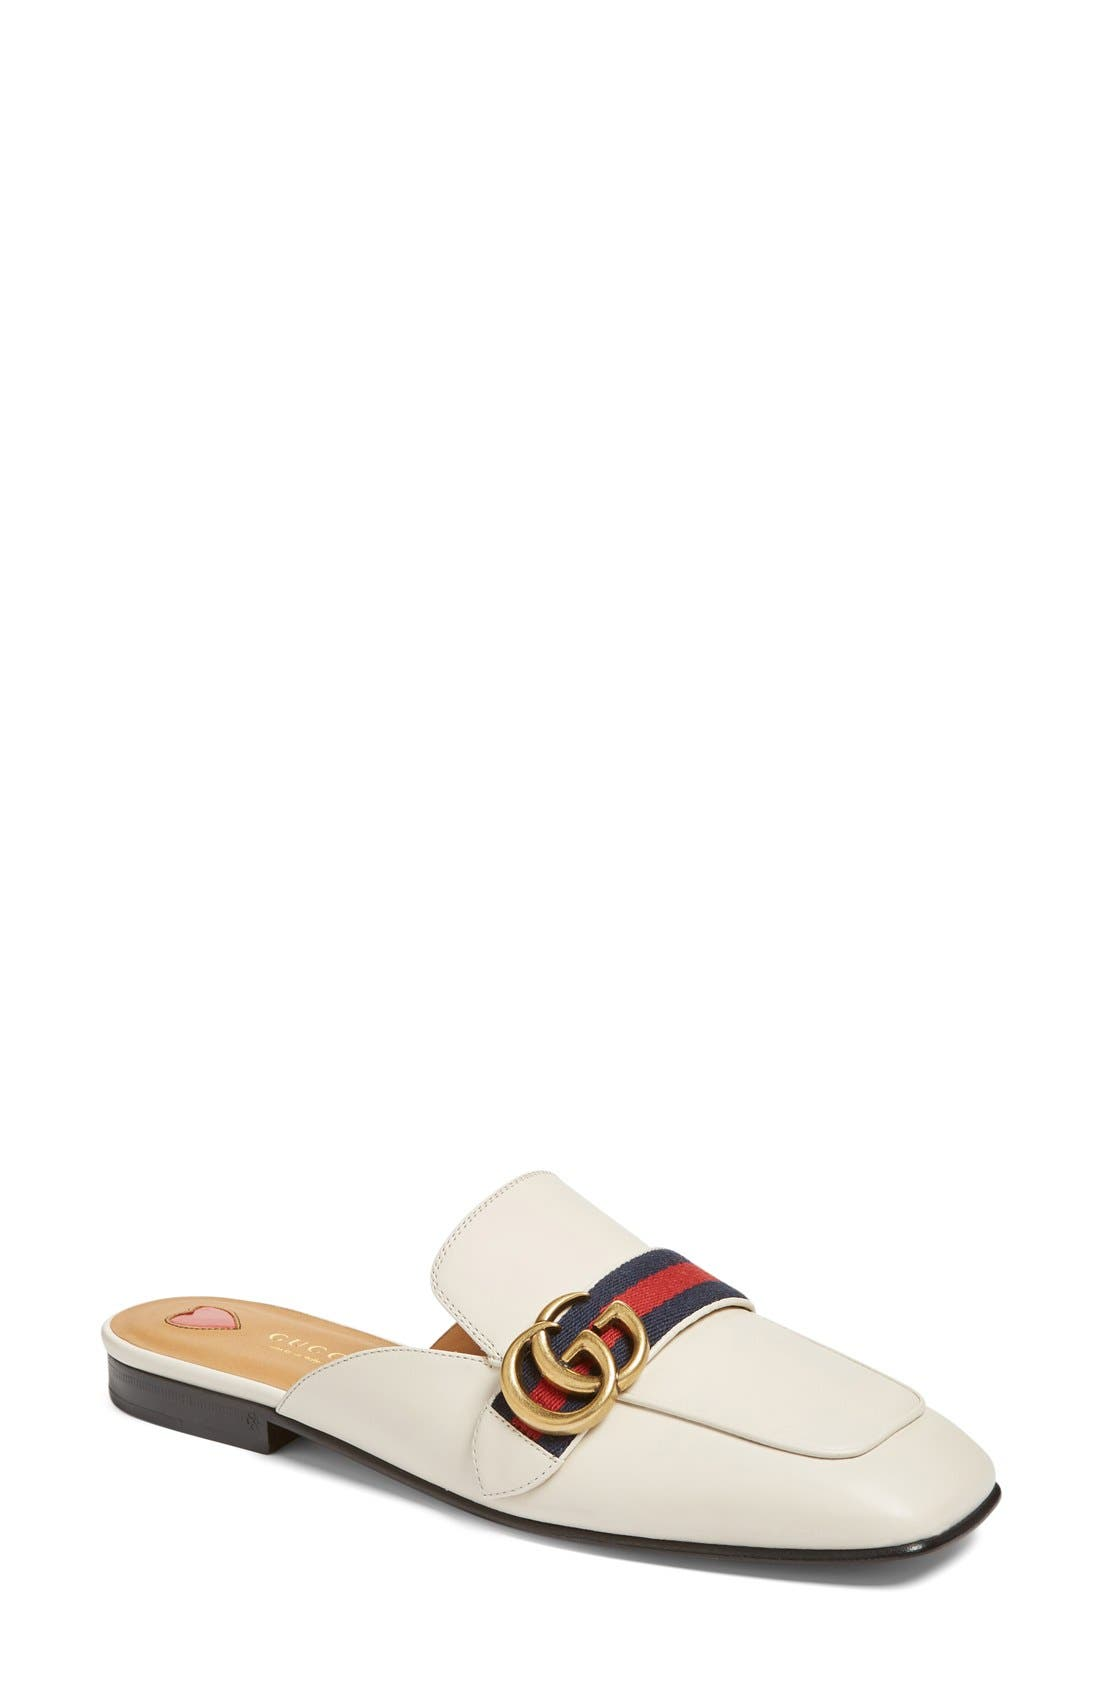 Loafer Mule,                             Main thumbnail 1, color,                             White Leather